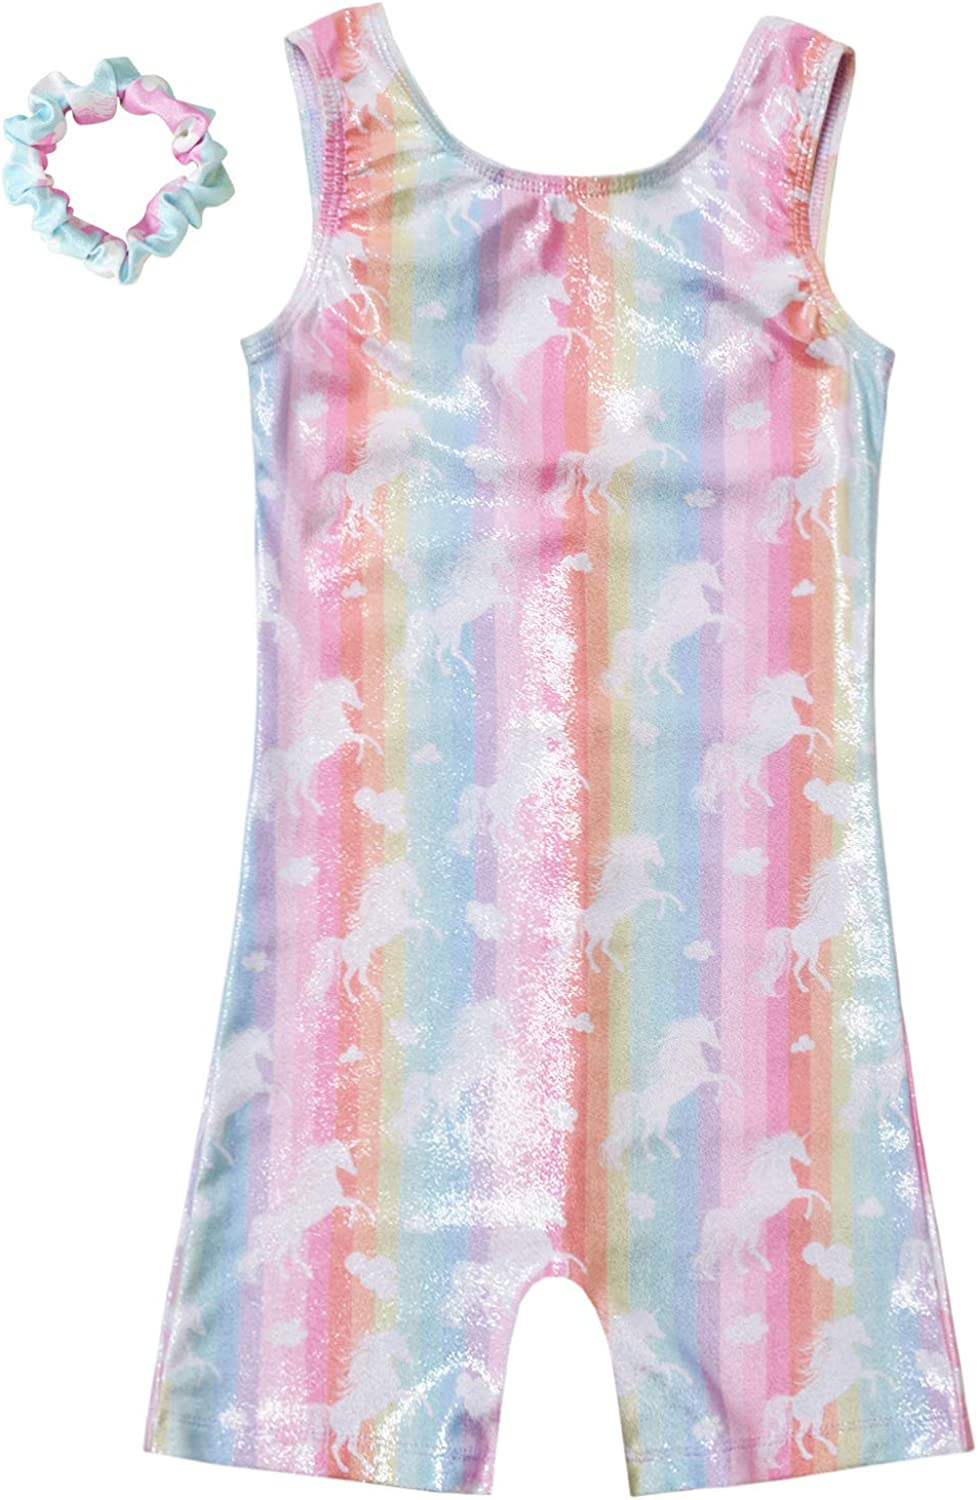 QPANCY Gymnastics Leotards for Girls Sparkly Unicorn Outfits Activewear Quick Dry